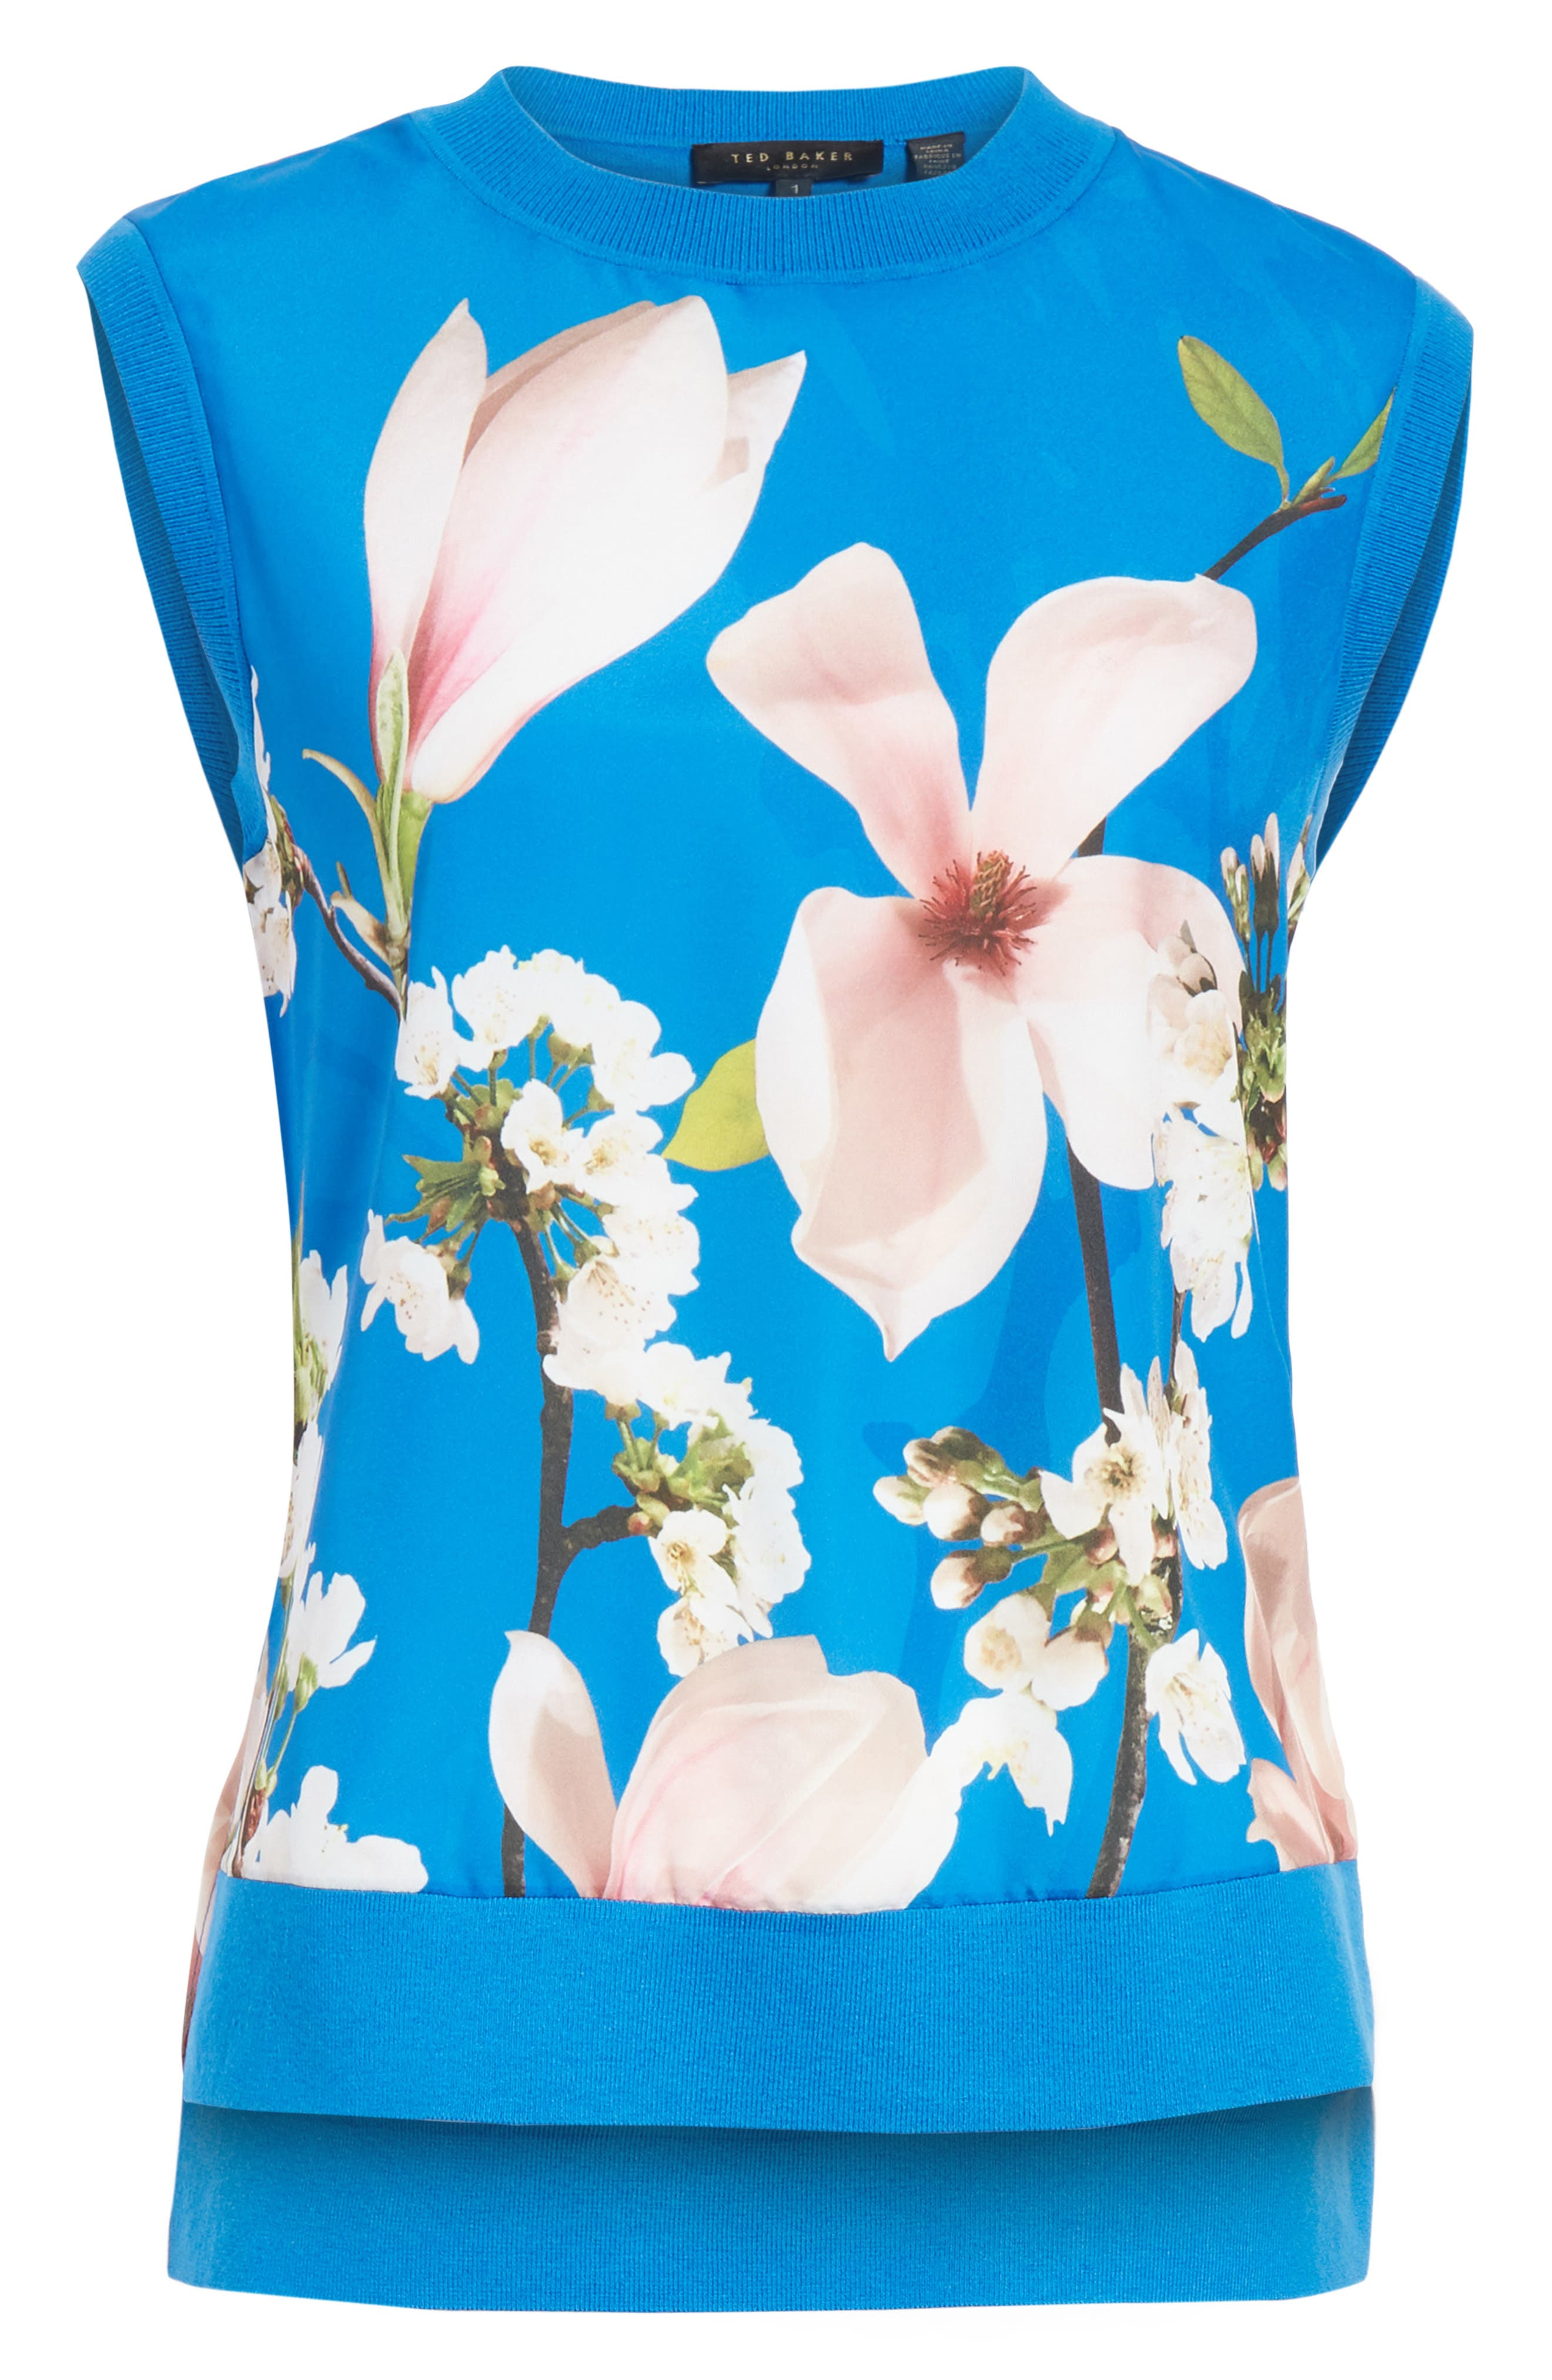 Harmony Floral Mix Media Sleeveless Sweater,                             Alternate thumbnail 6, color,                             Bright Blue